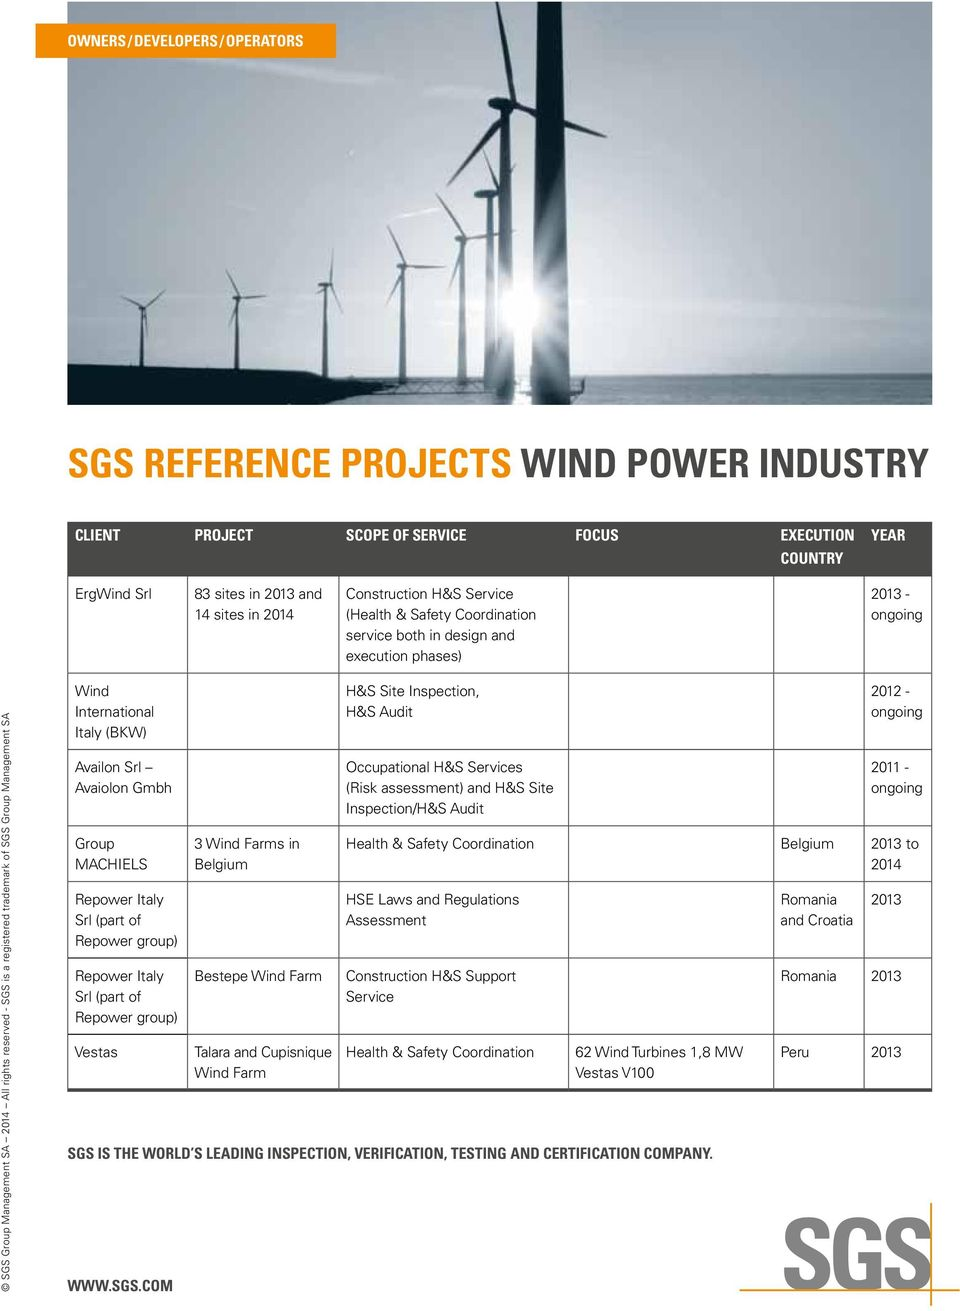 SGS REFERENCE PROJECTS WIND POWER INDUSTRY - PDF